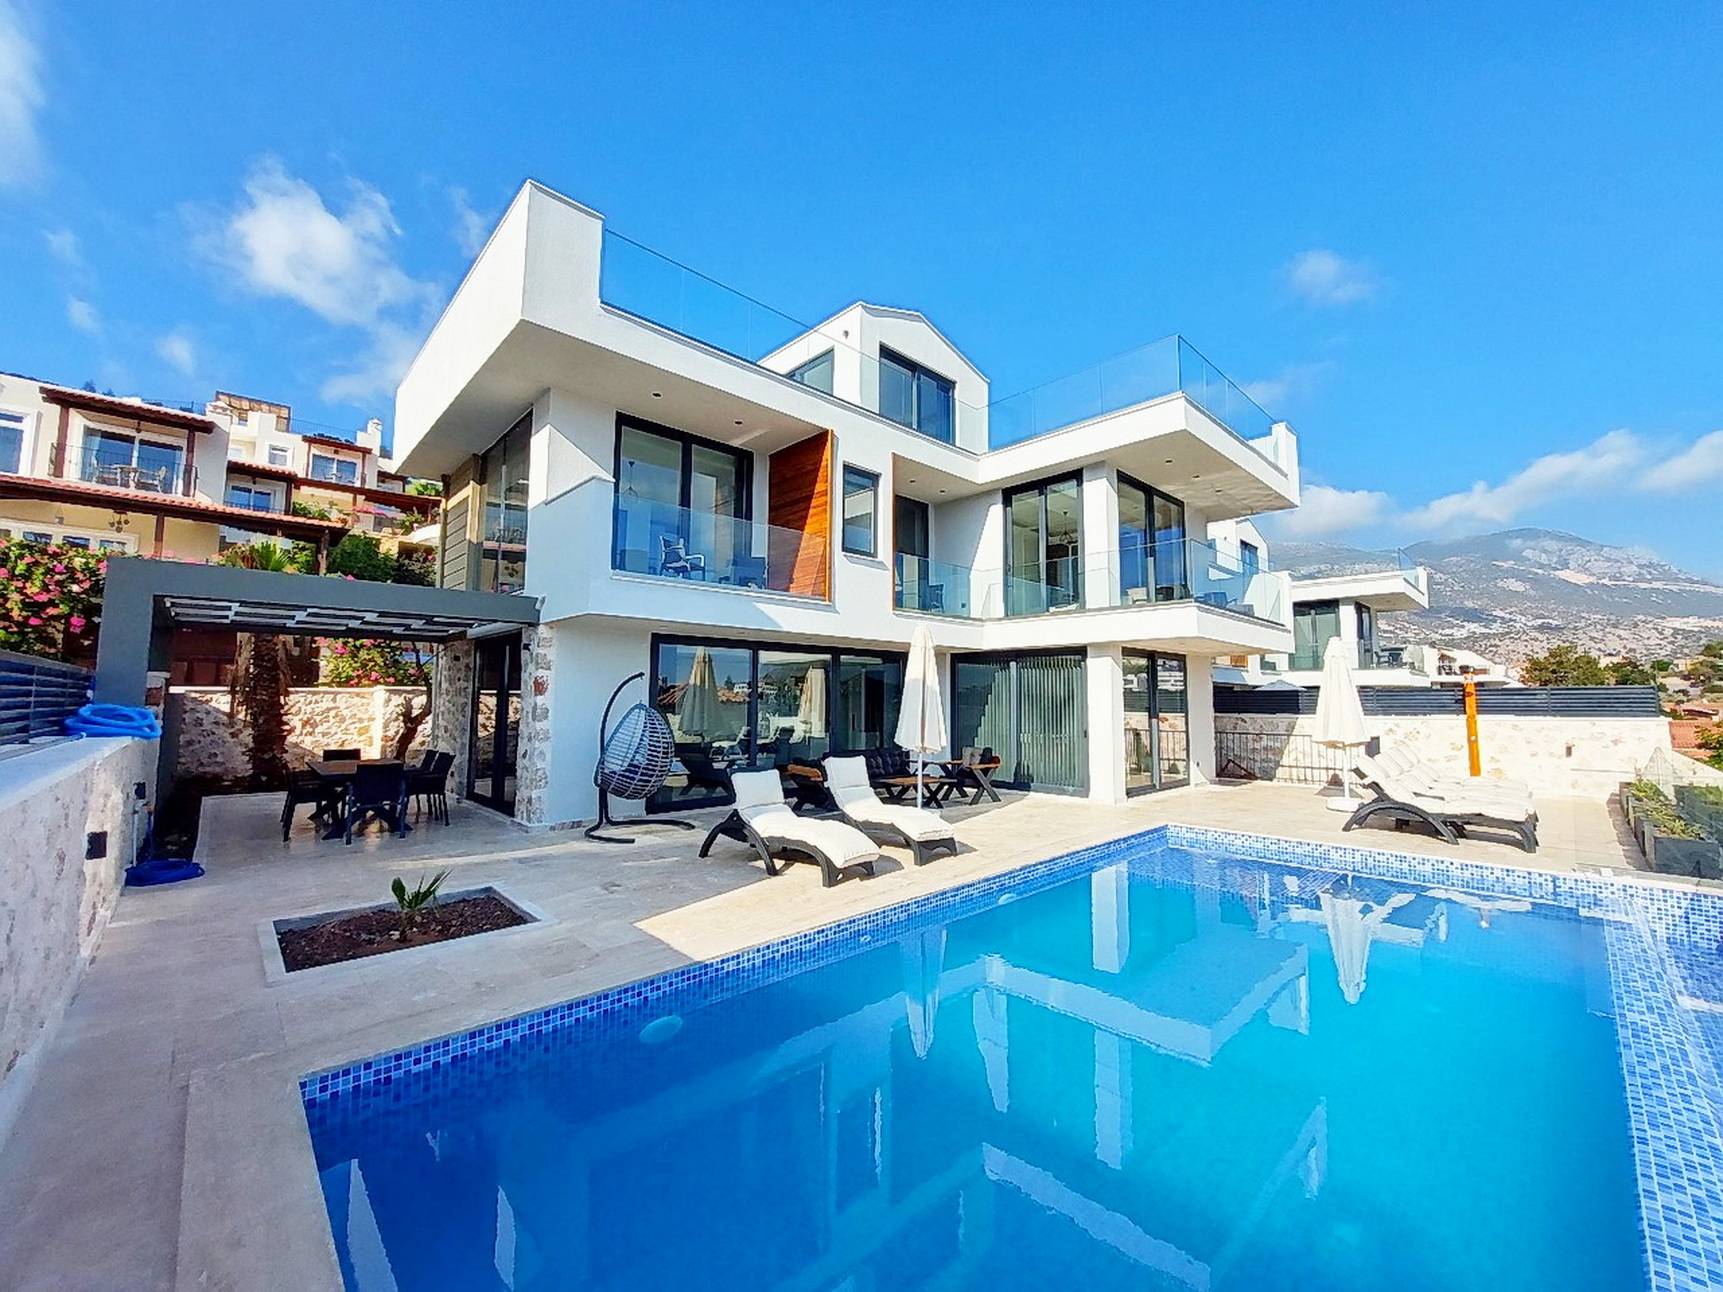 4 Bedroom Luxury Detached Villas with Sea View & Infinity Pool For Sale